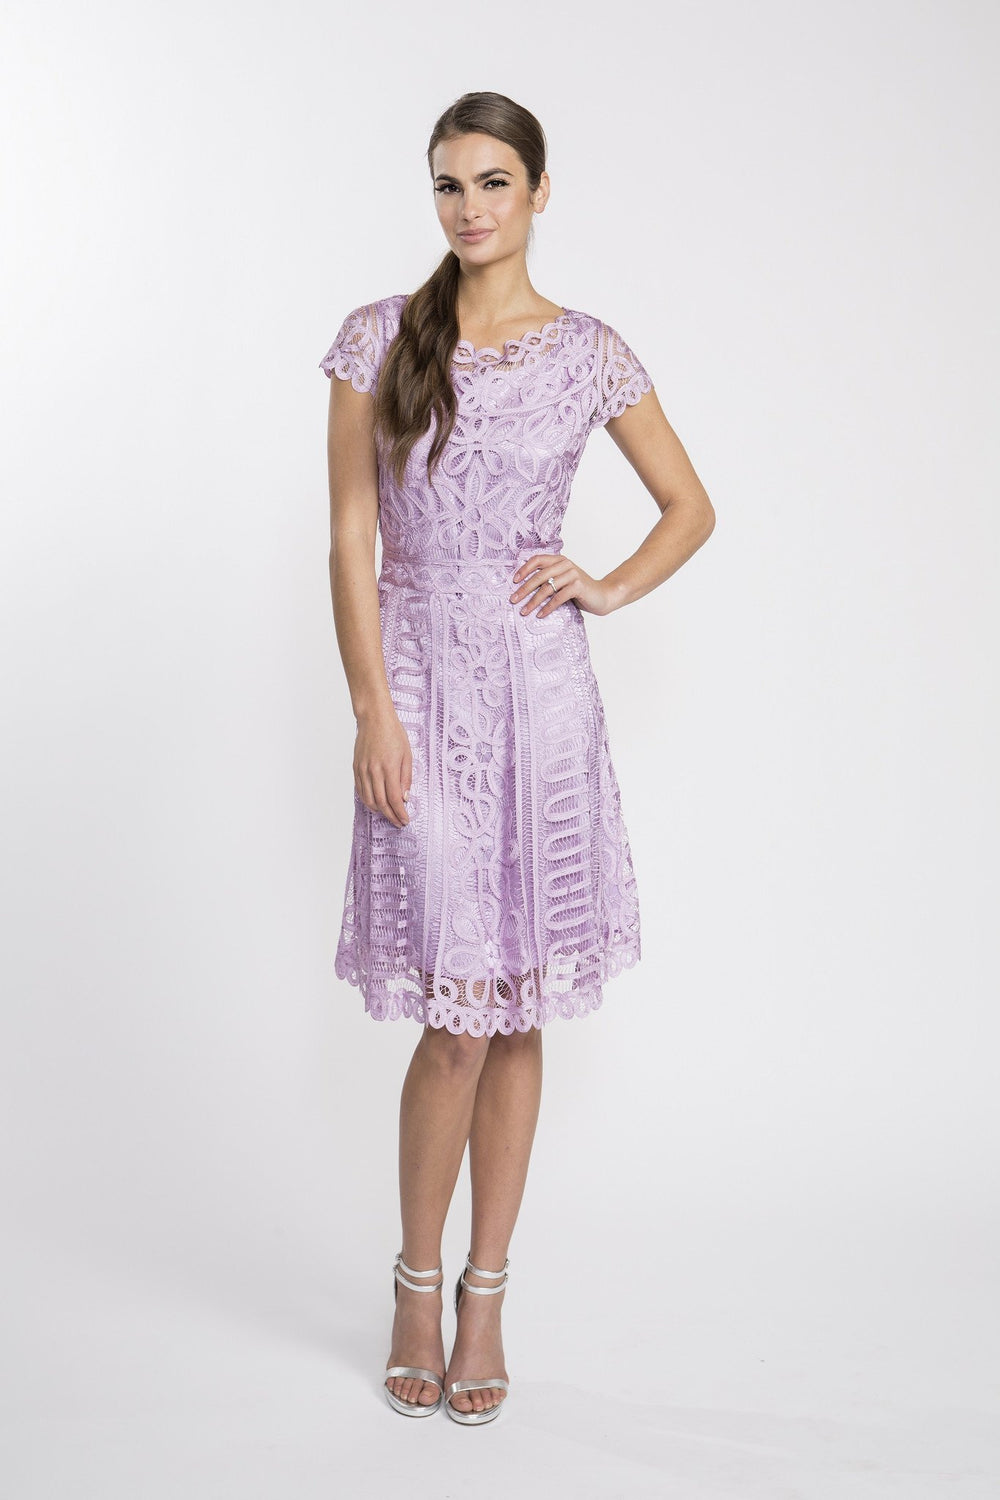 D1319 Women's Boat Neck A-Line Lace Cocktail Dress